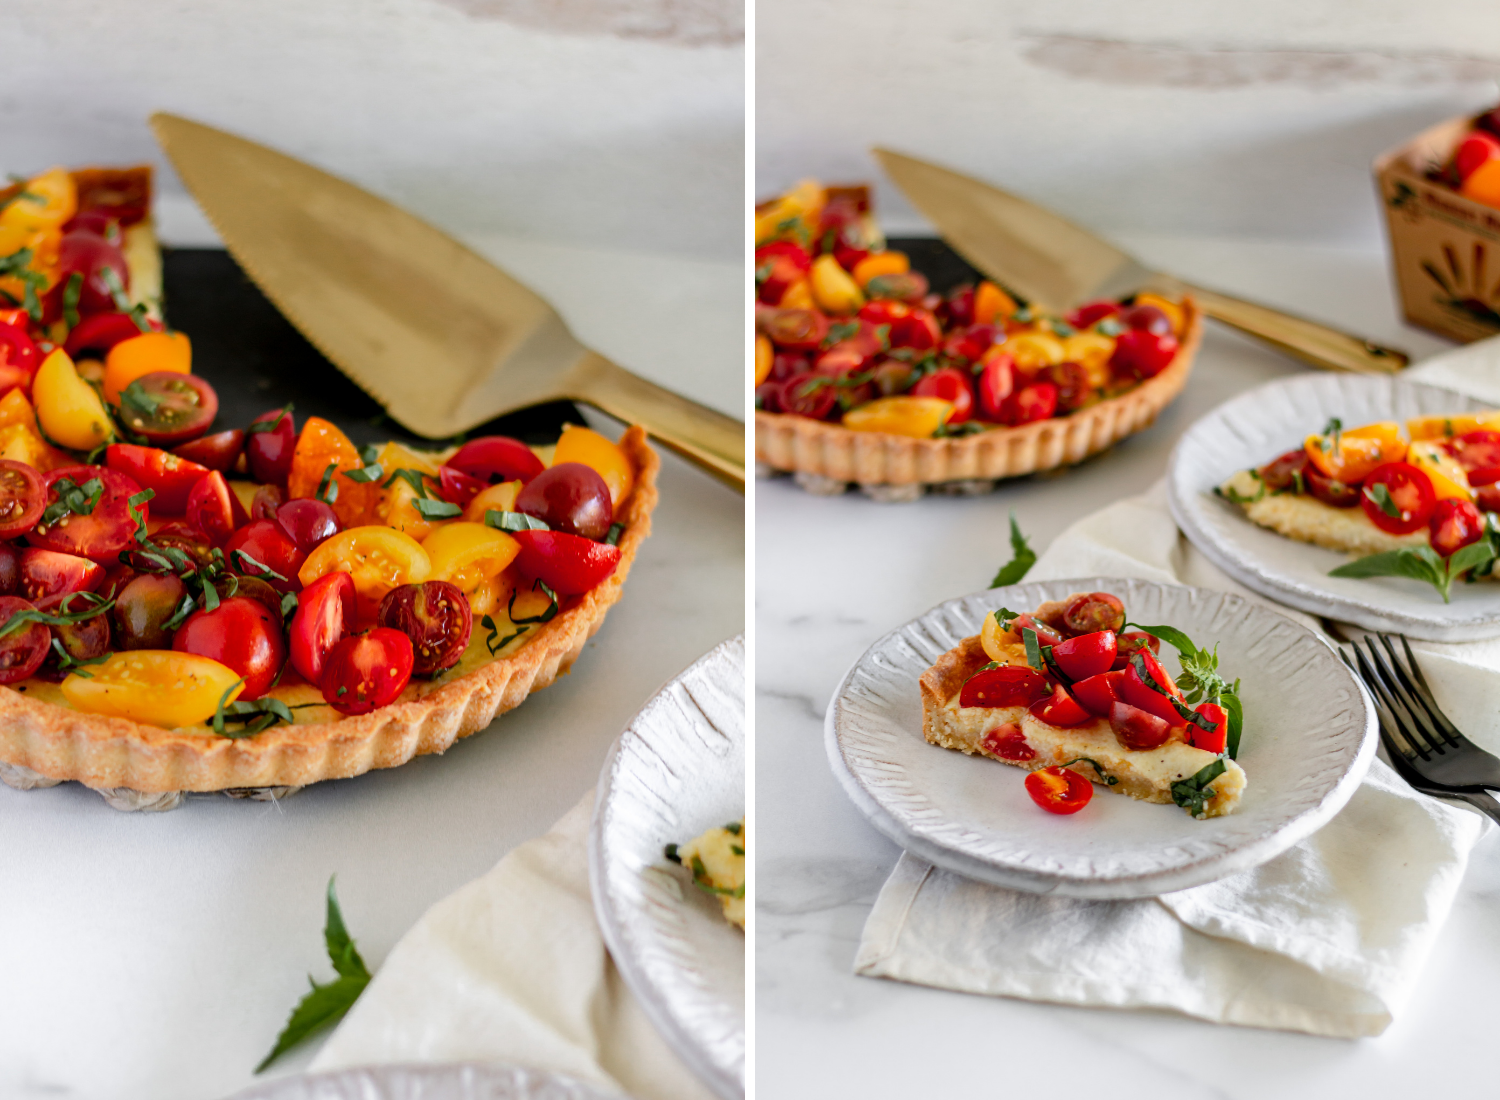 slices of buttery tart with tomatoes